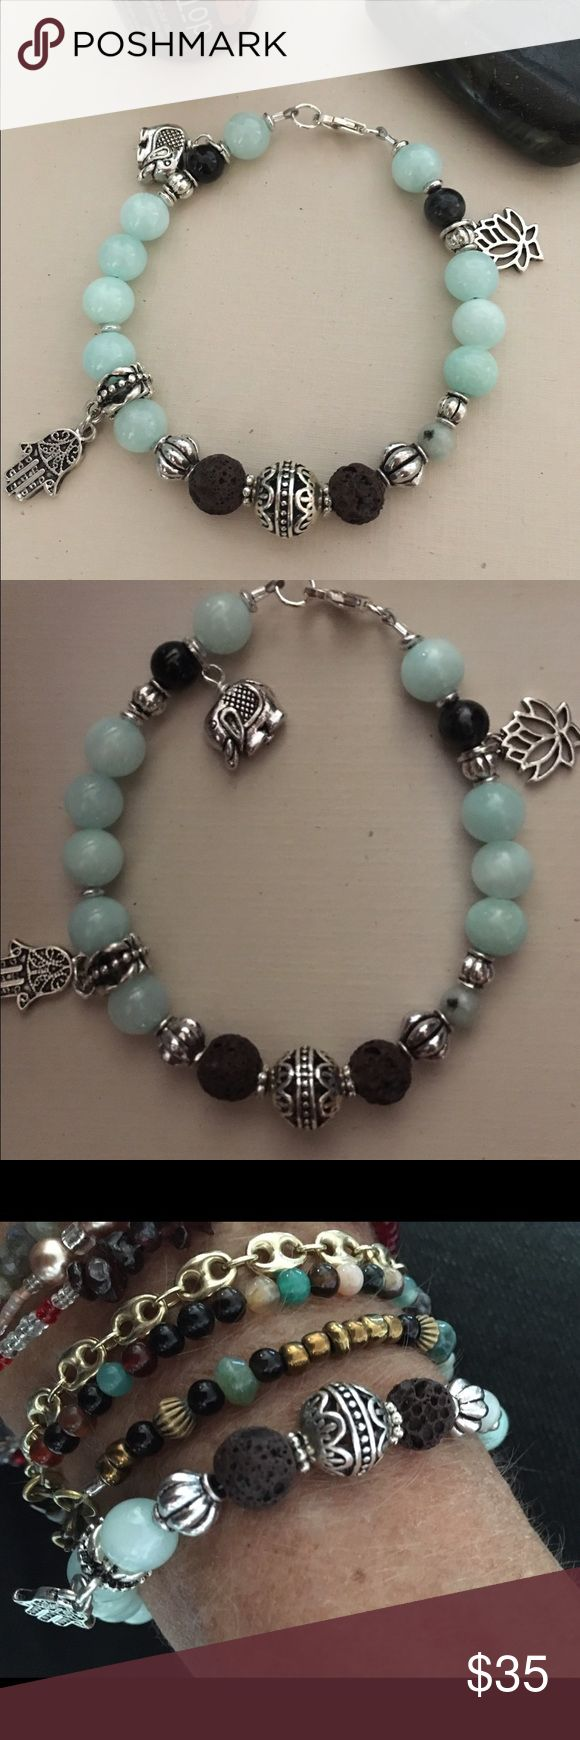 "Essential Oil Yoga Charm Bracelet  Artisan Handmade featuring Beautiful Amazonite , Black Tourmaline Gemstones ,with Brown Lava beads, Antique Carved Tibetan Silver Focal and spacer beads. Hamsa Hand, Lotus, Elephant Charms. This has a Large Sterling Silver Lobster Clasp and Includes Sample Essential Oil ( put drop on Lava Stone)7 3/4""  Custom Size Available Jewelry Bracelets"